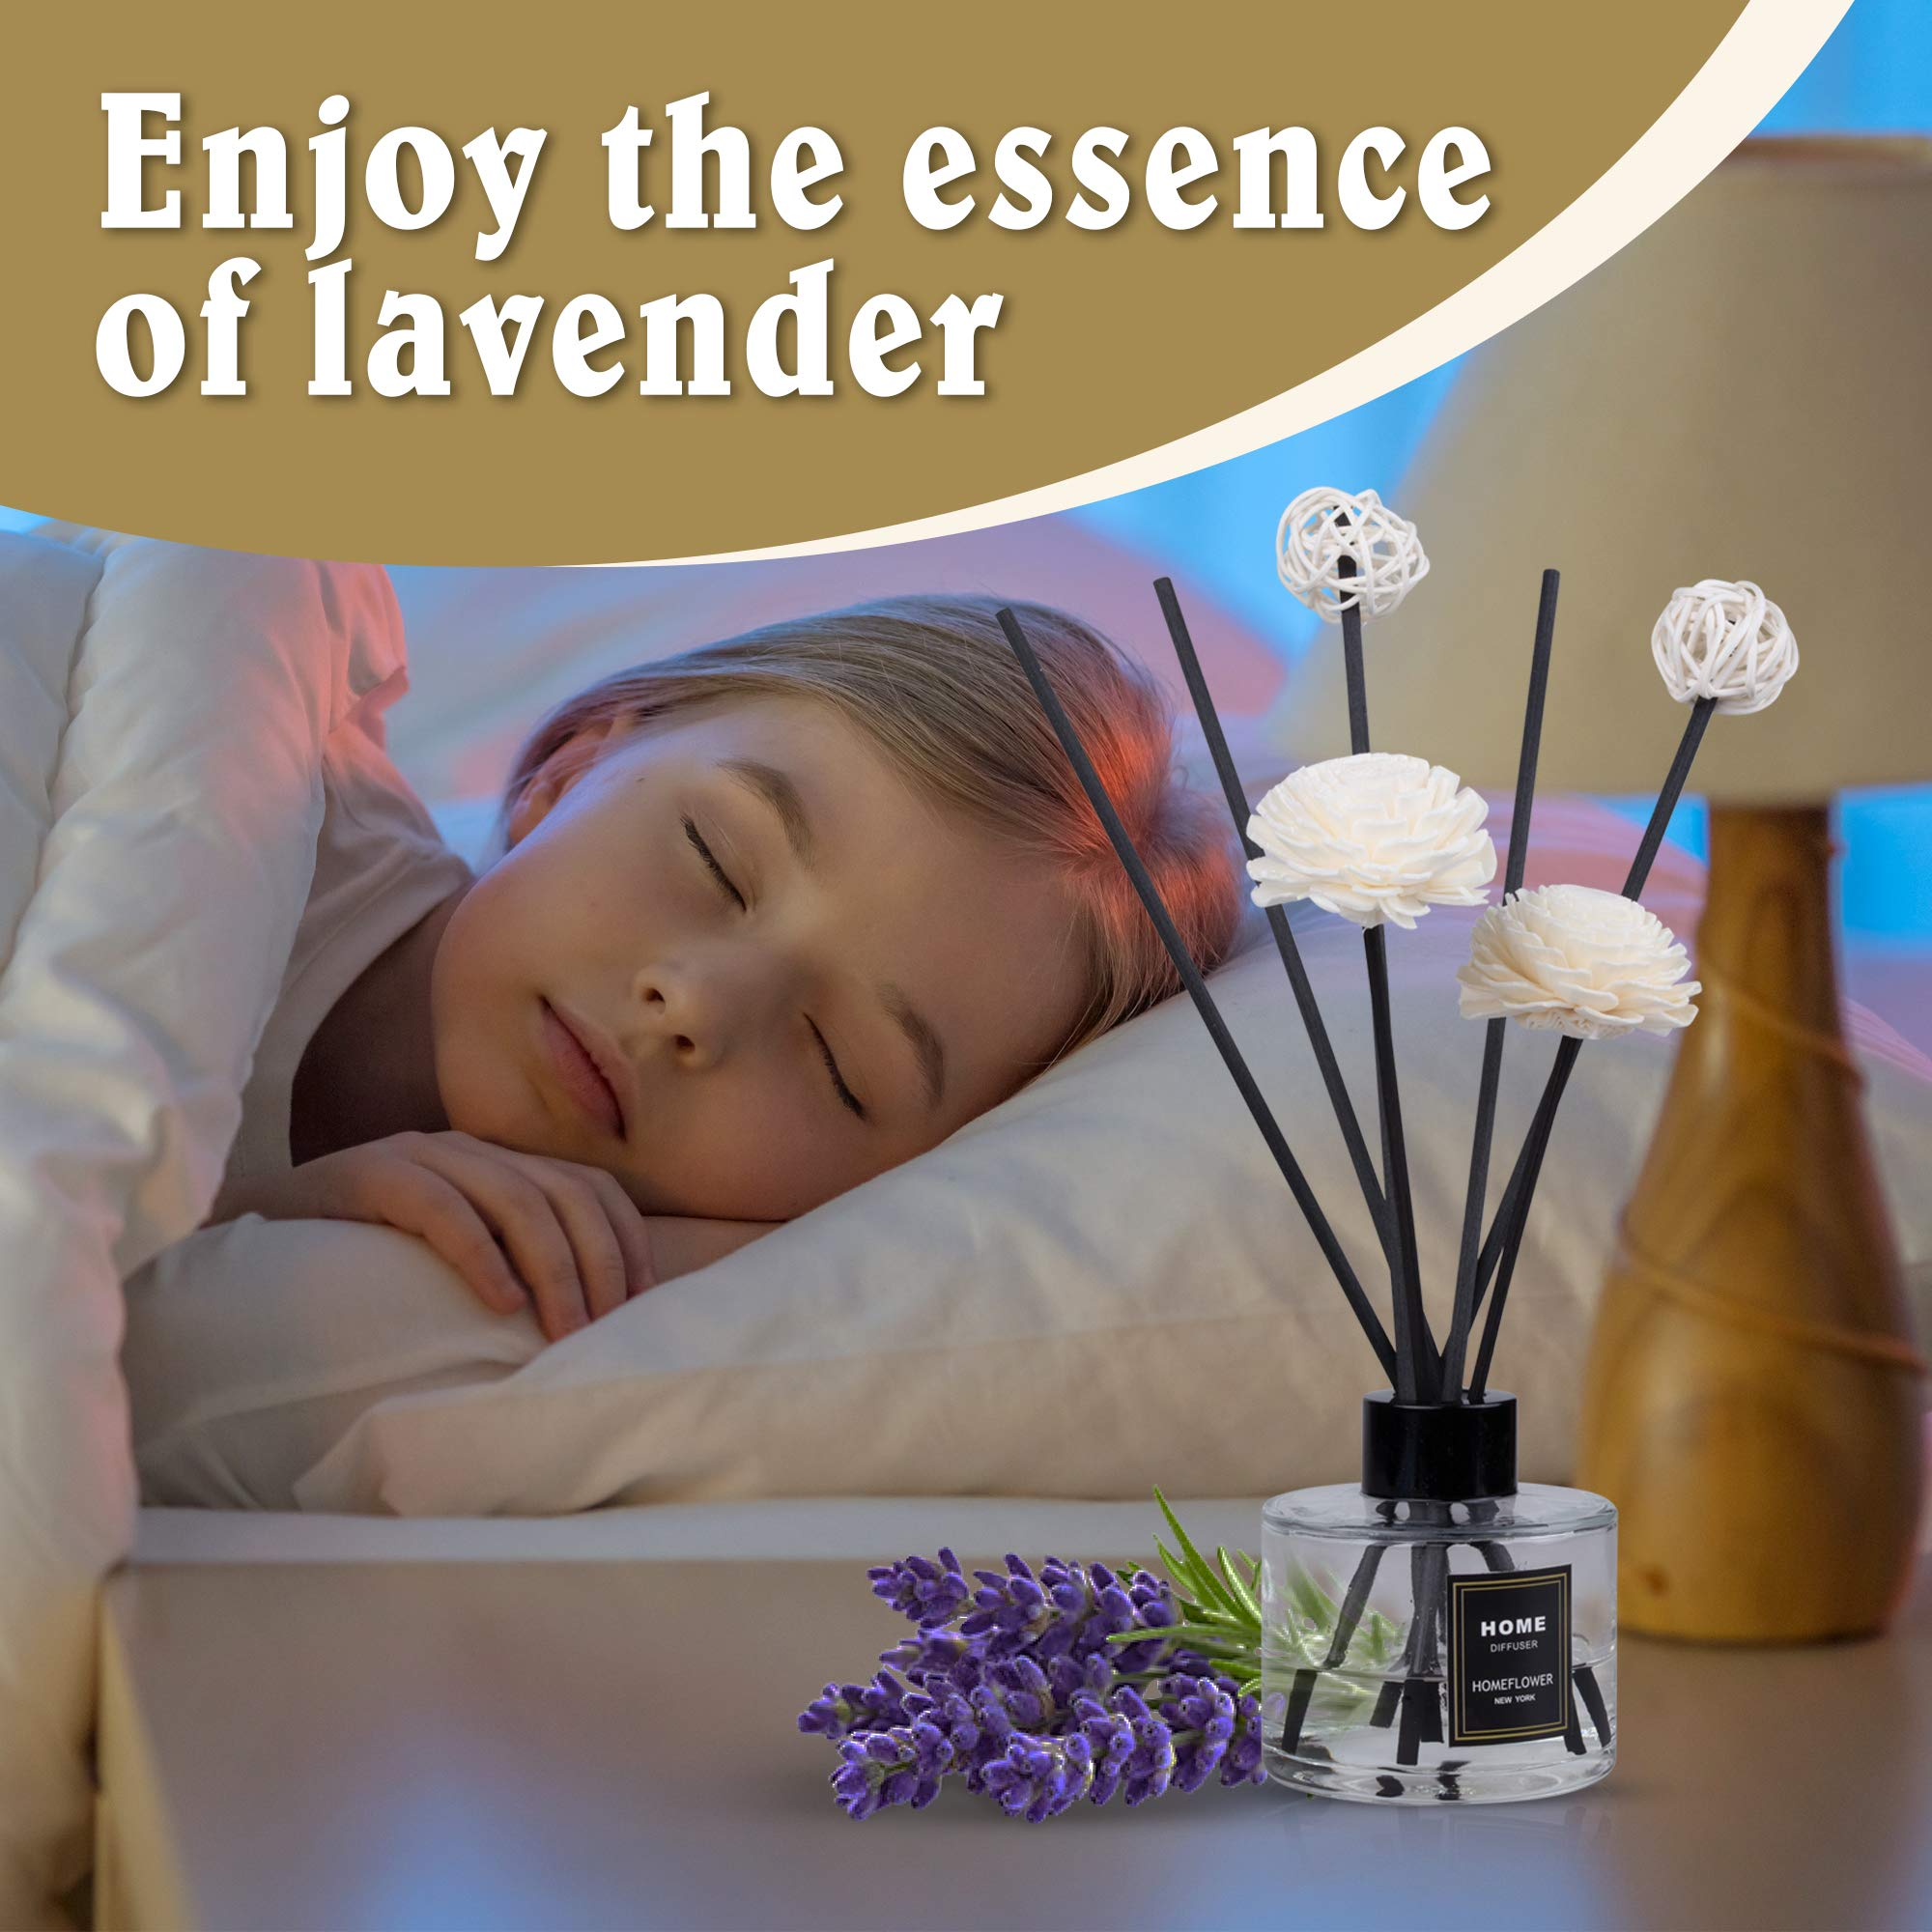 HomeFlower Reed Diffuser Set Lavender: Scent Sticks & Sola Flowers Included - Scented Liquid Fragrance Oil - Room Diffusers for Home or Bathroom - Made with FreshScent Premium Essential Oils - 4 oz by HomeFlower (Image #3)